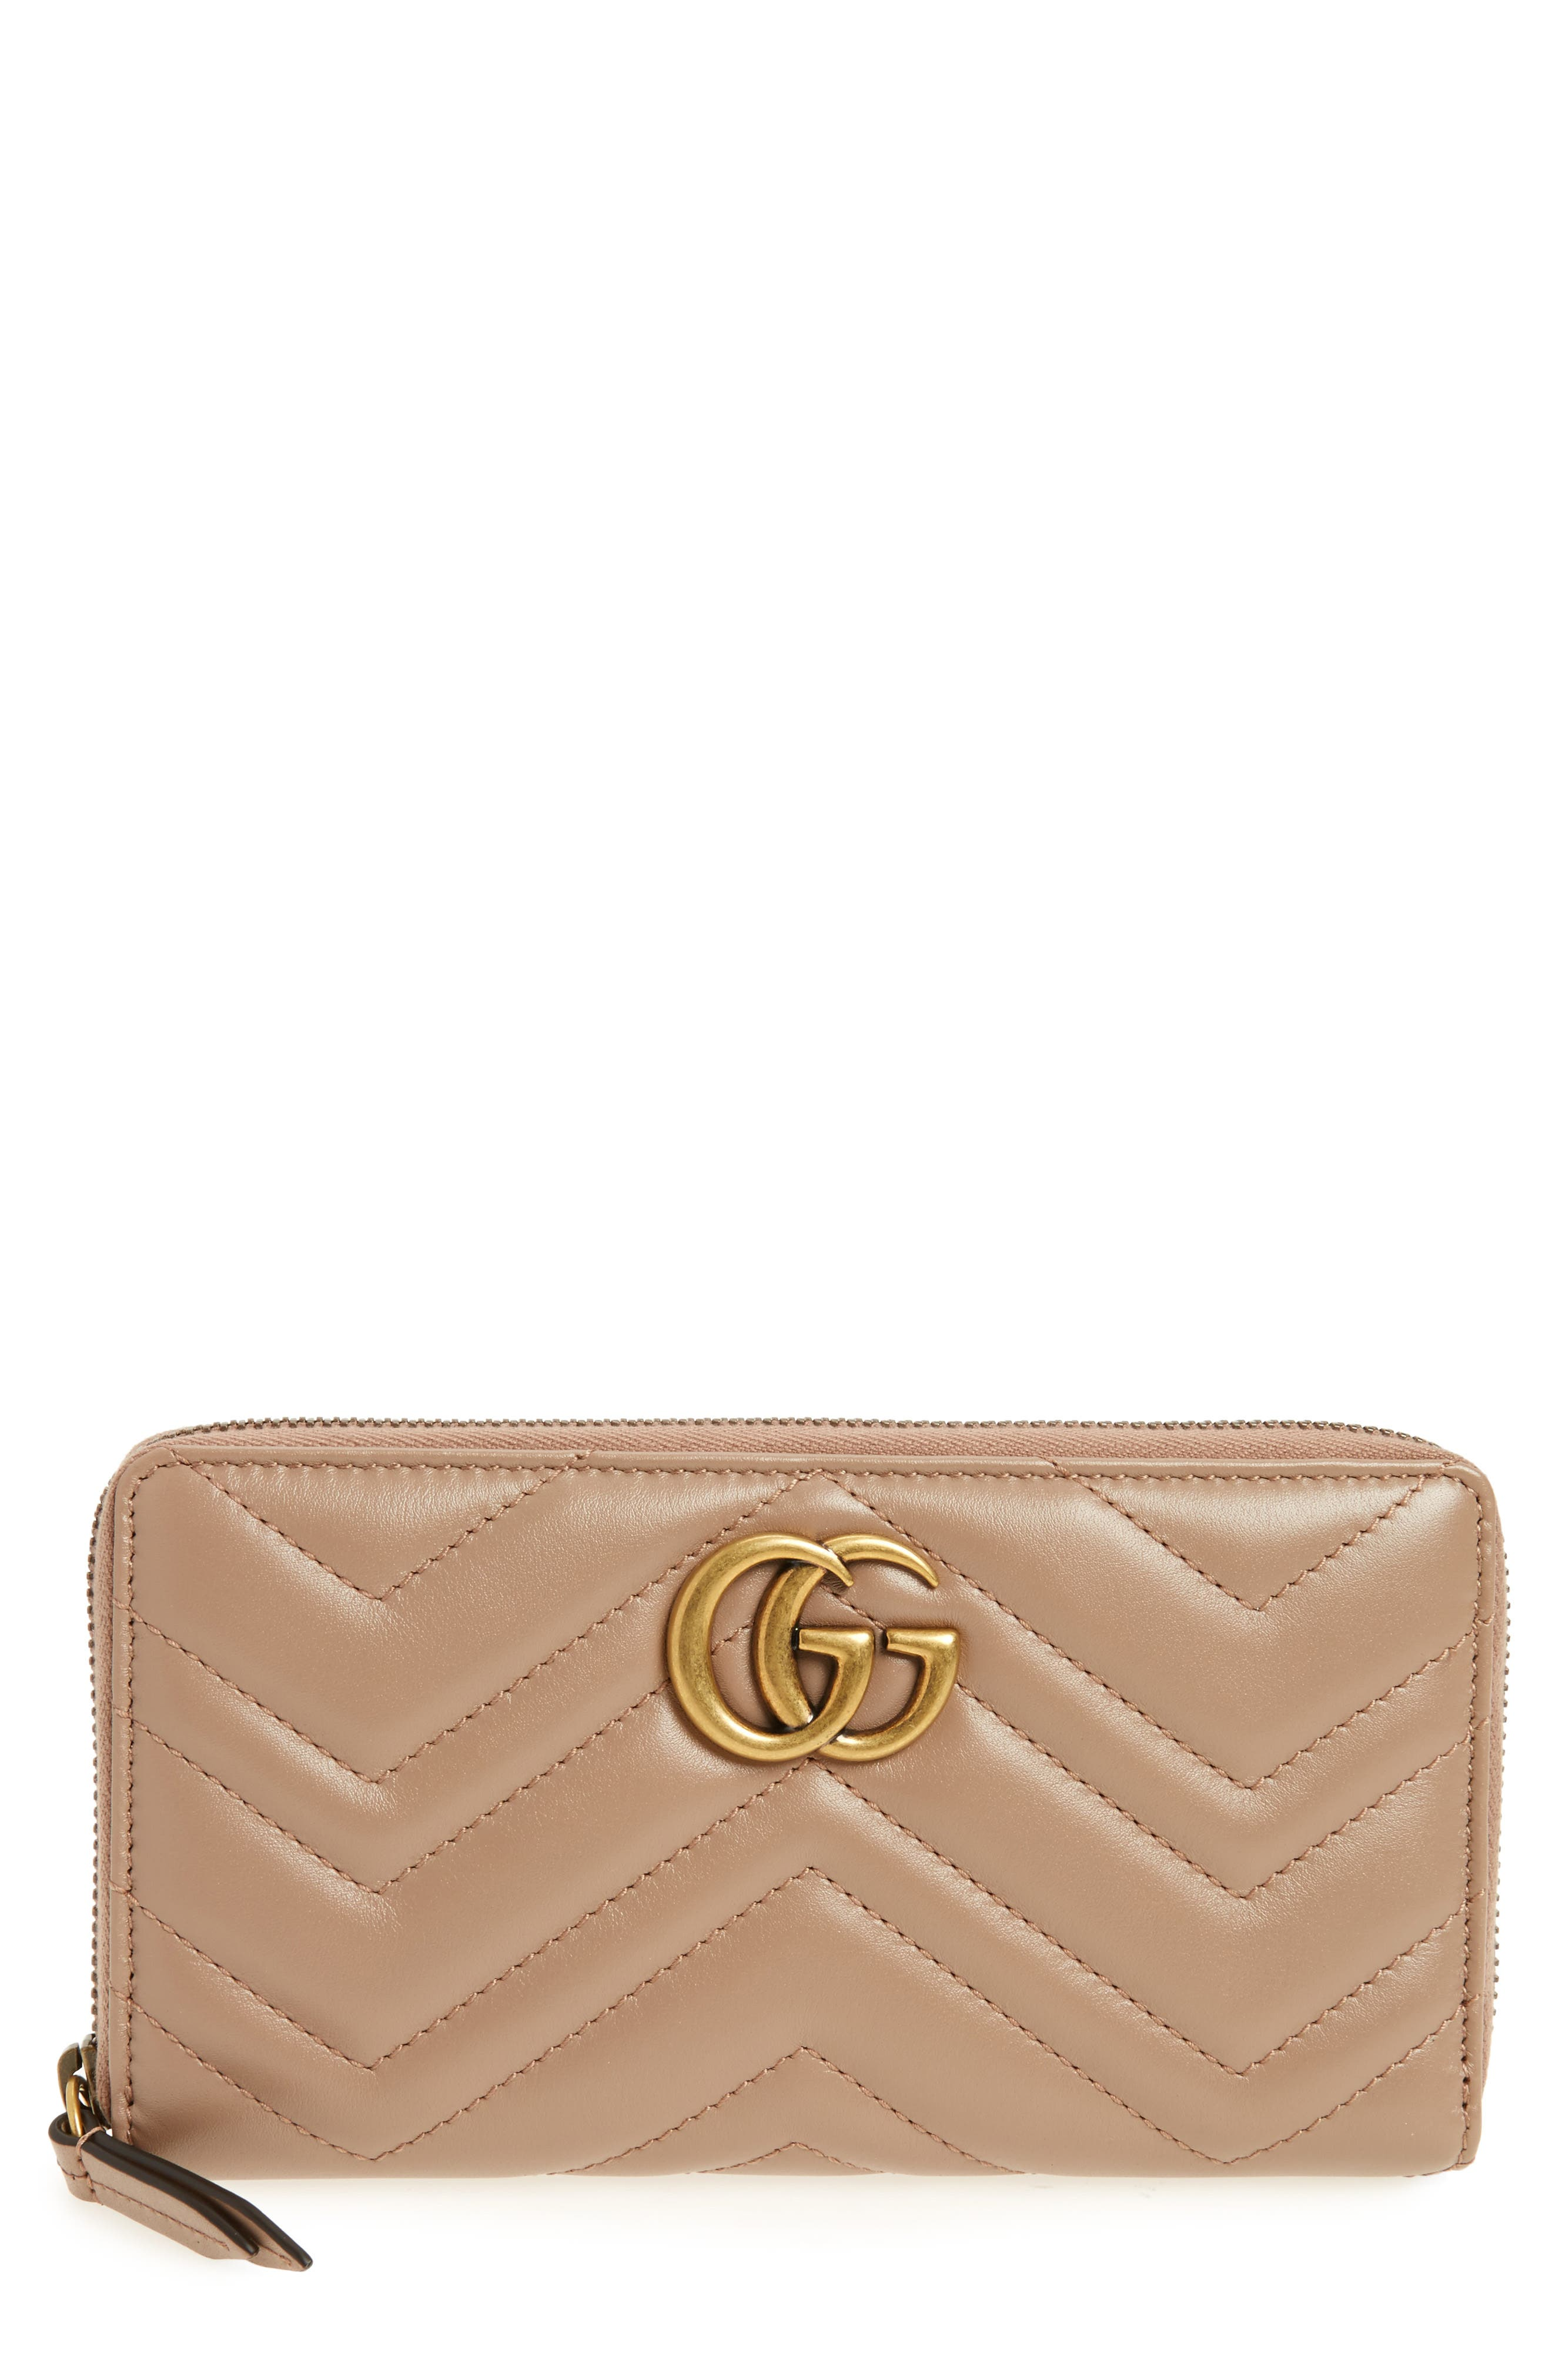 GUCCI, GG Marmont Matelassé Leather Zip-Around Wallet, Main thumbnail 1, color, PORCELAIN ROSE